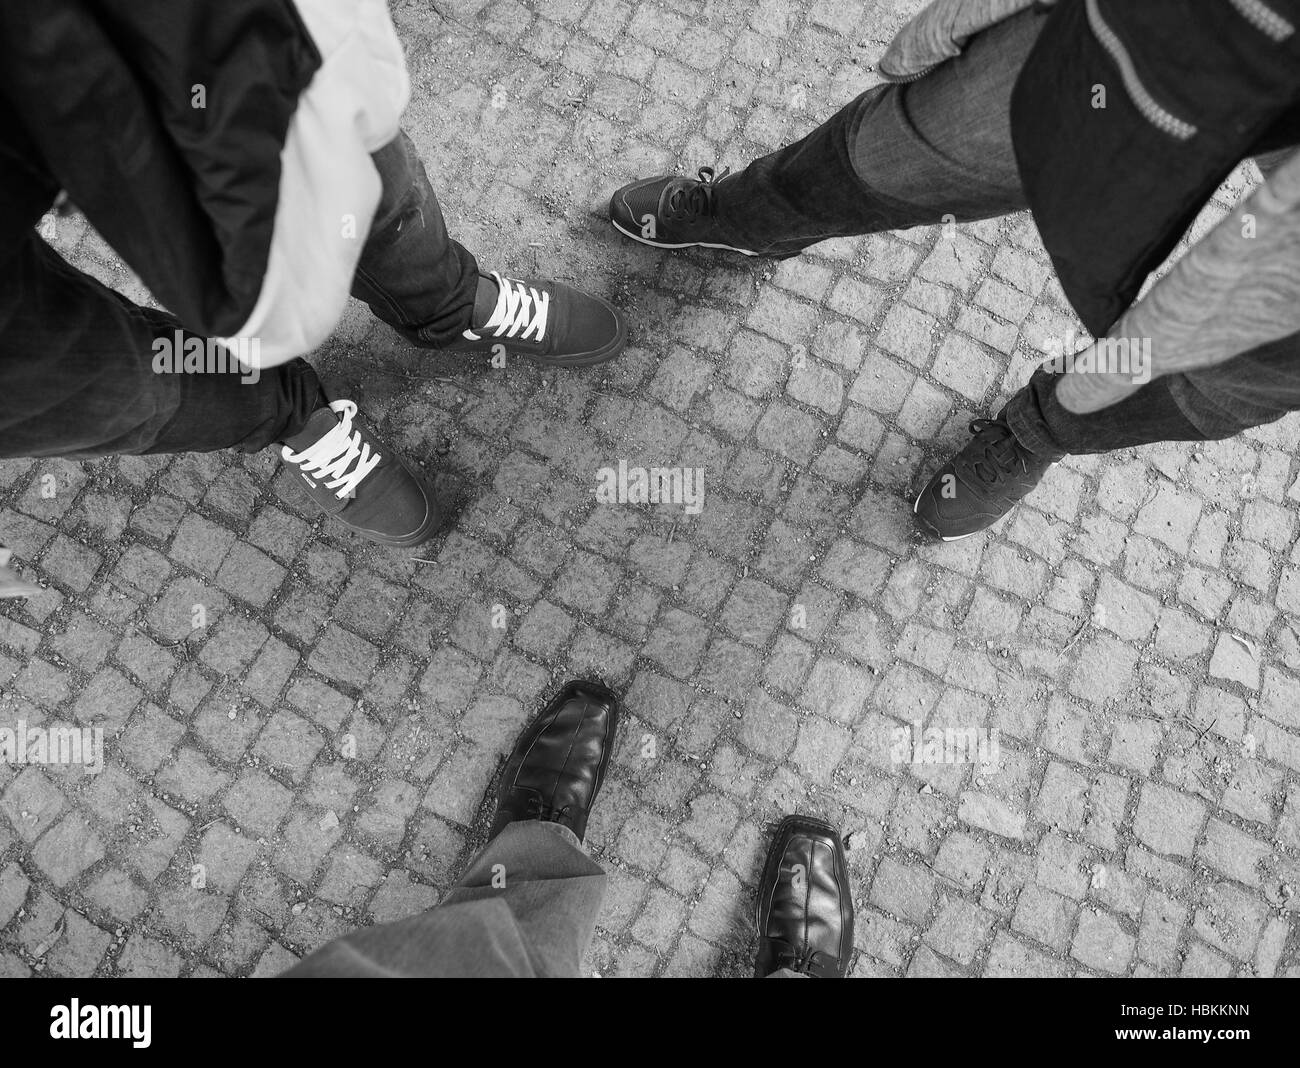 Three people feet in black and white - Stock Image